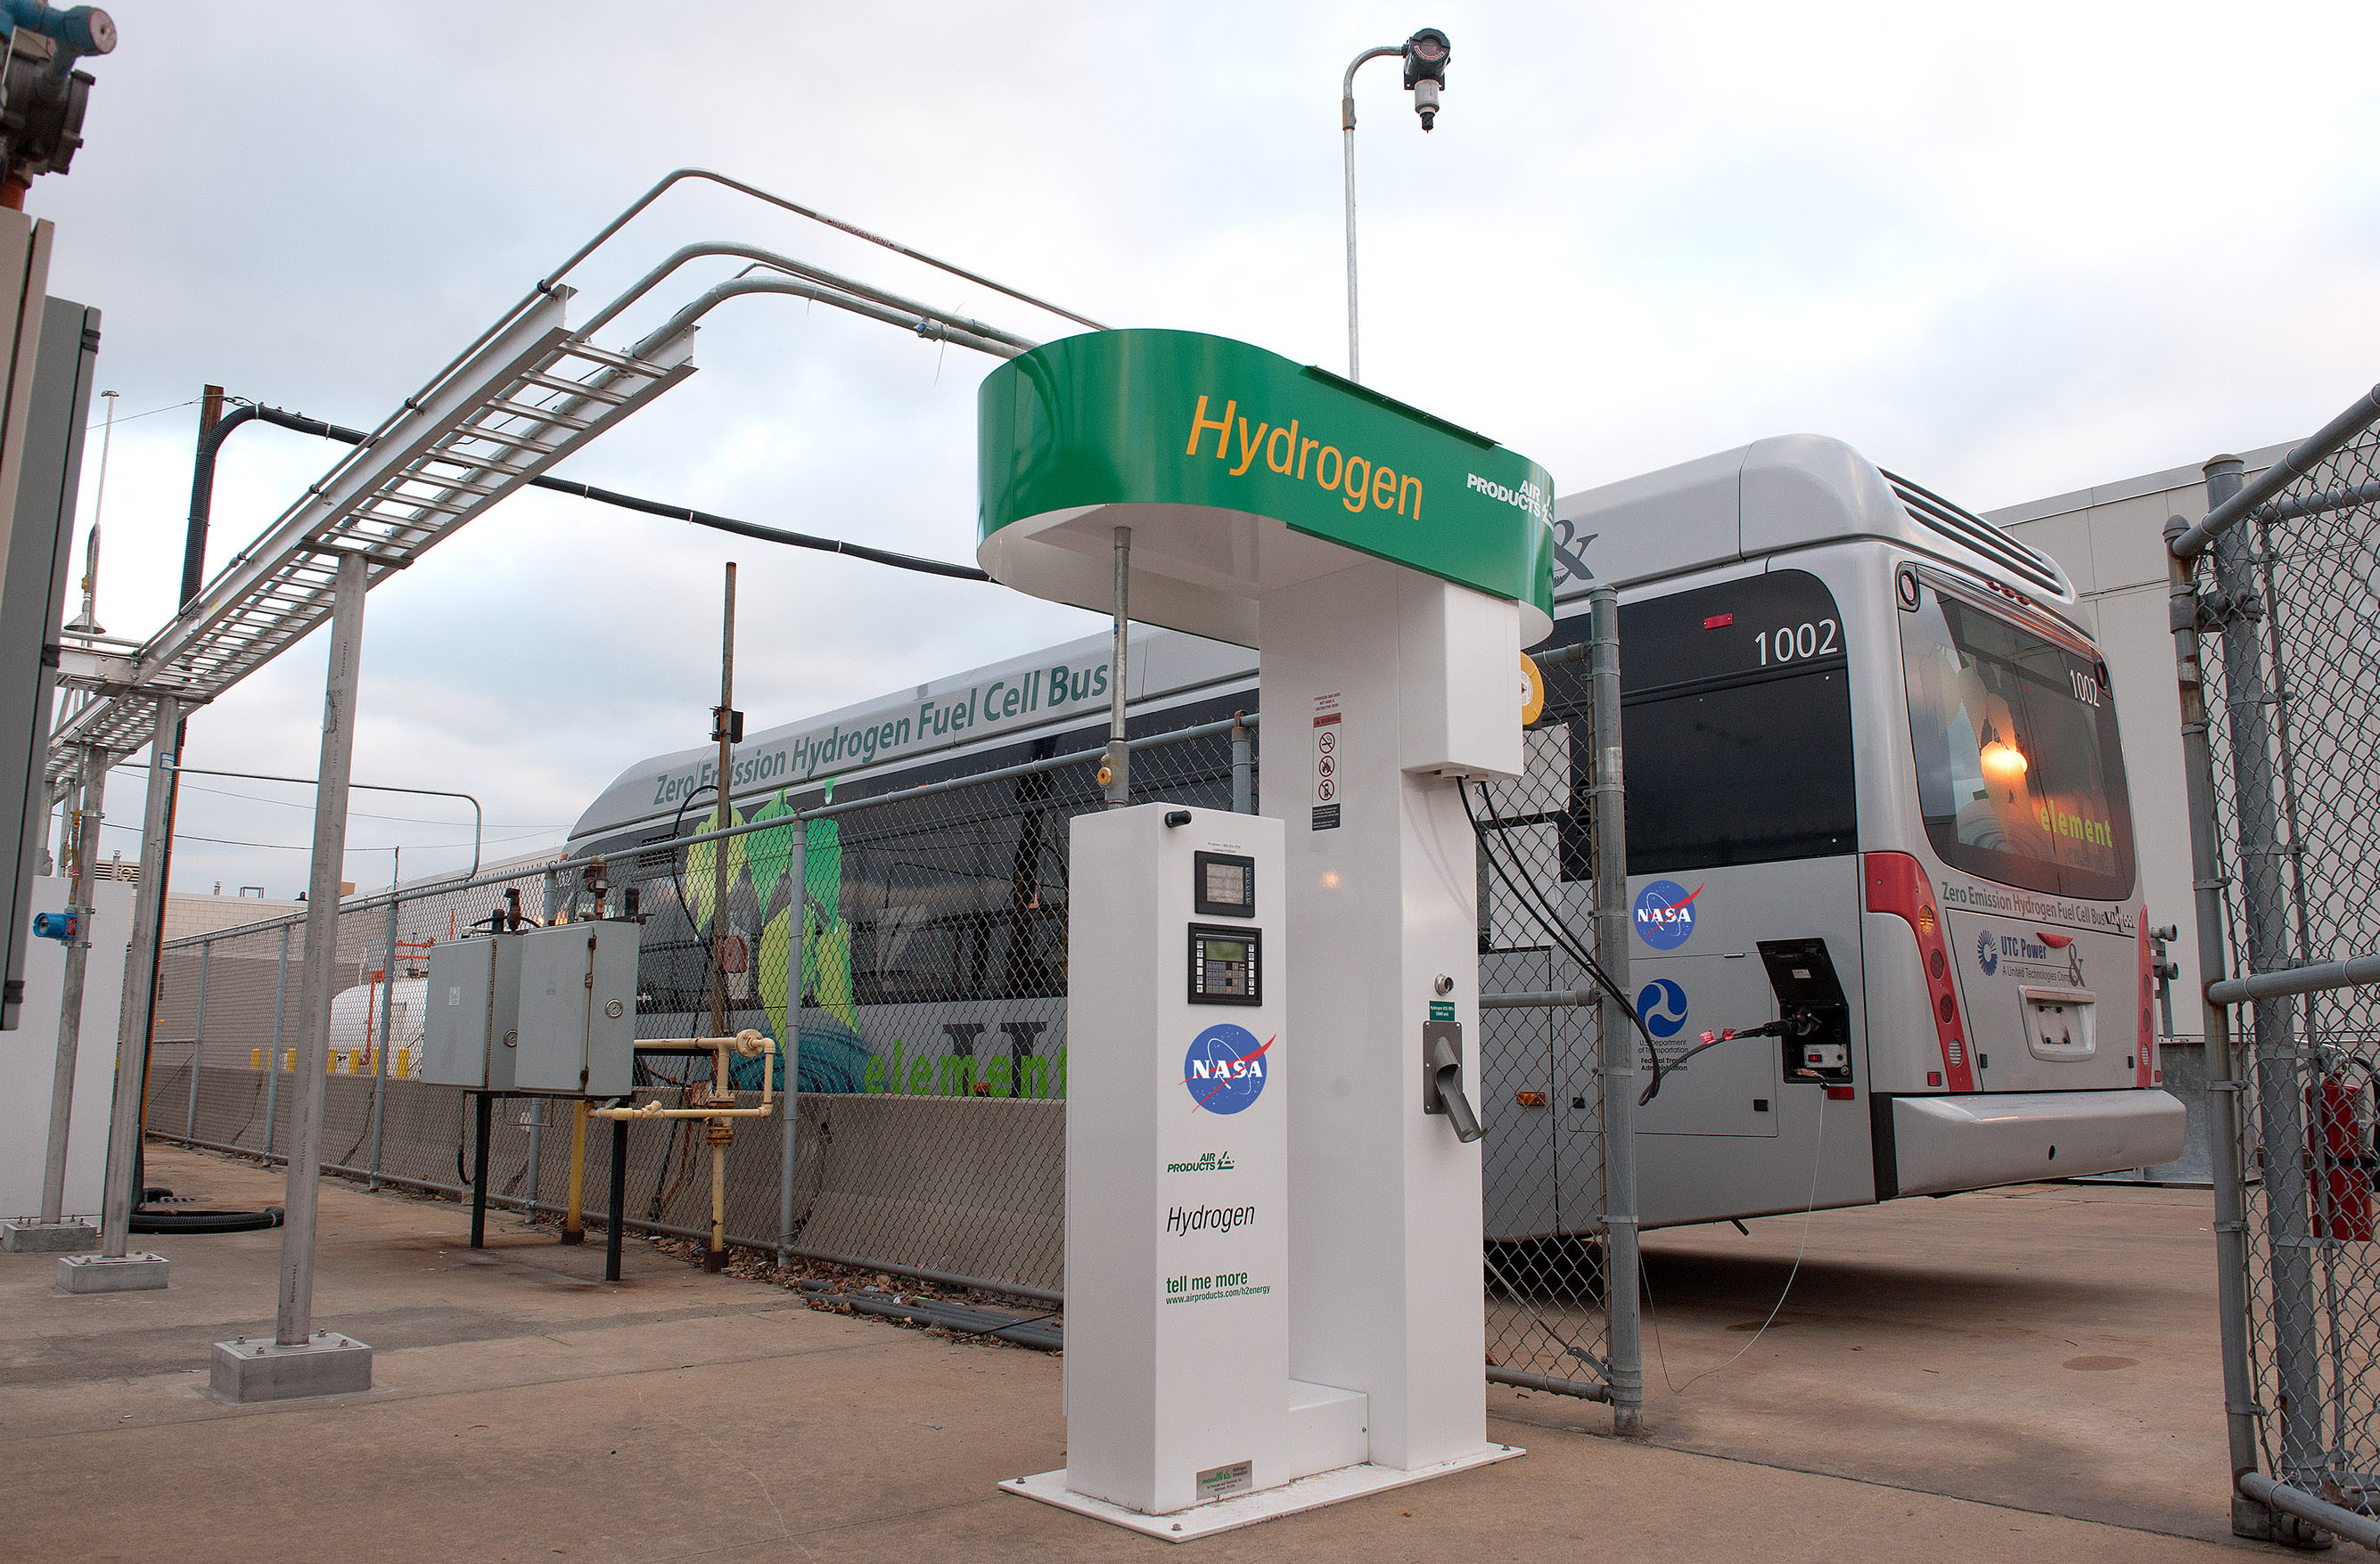 Nasa Partners With Community To Demonstrate Hydrogen Bus